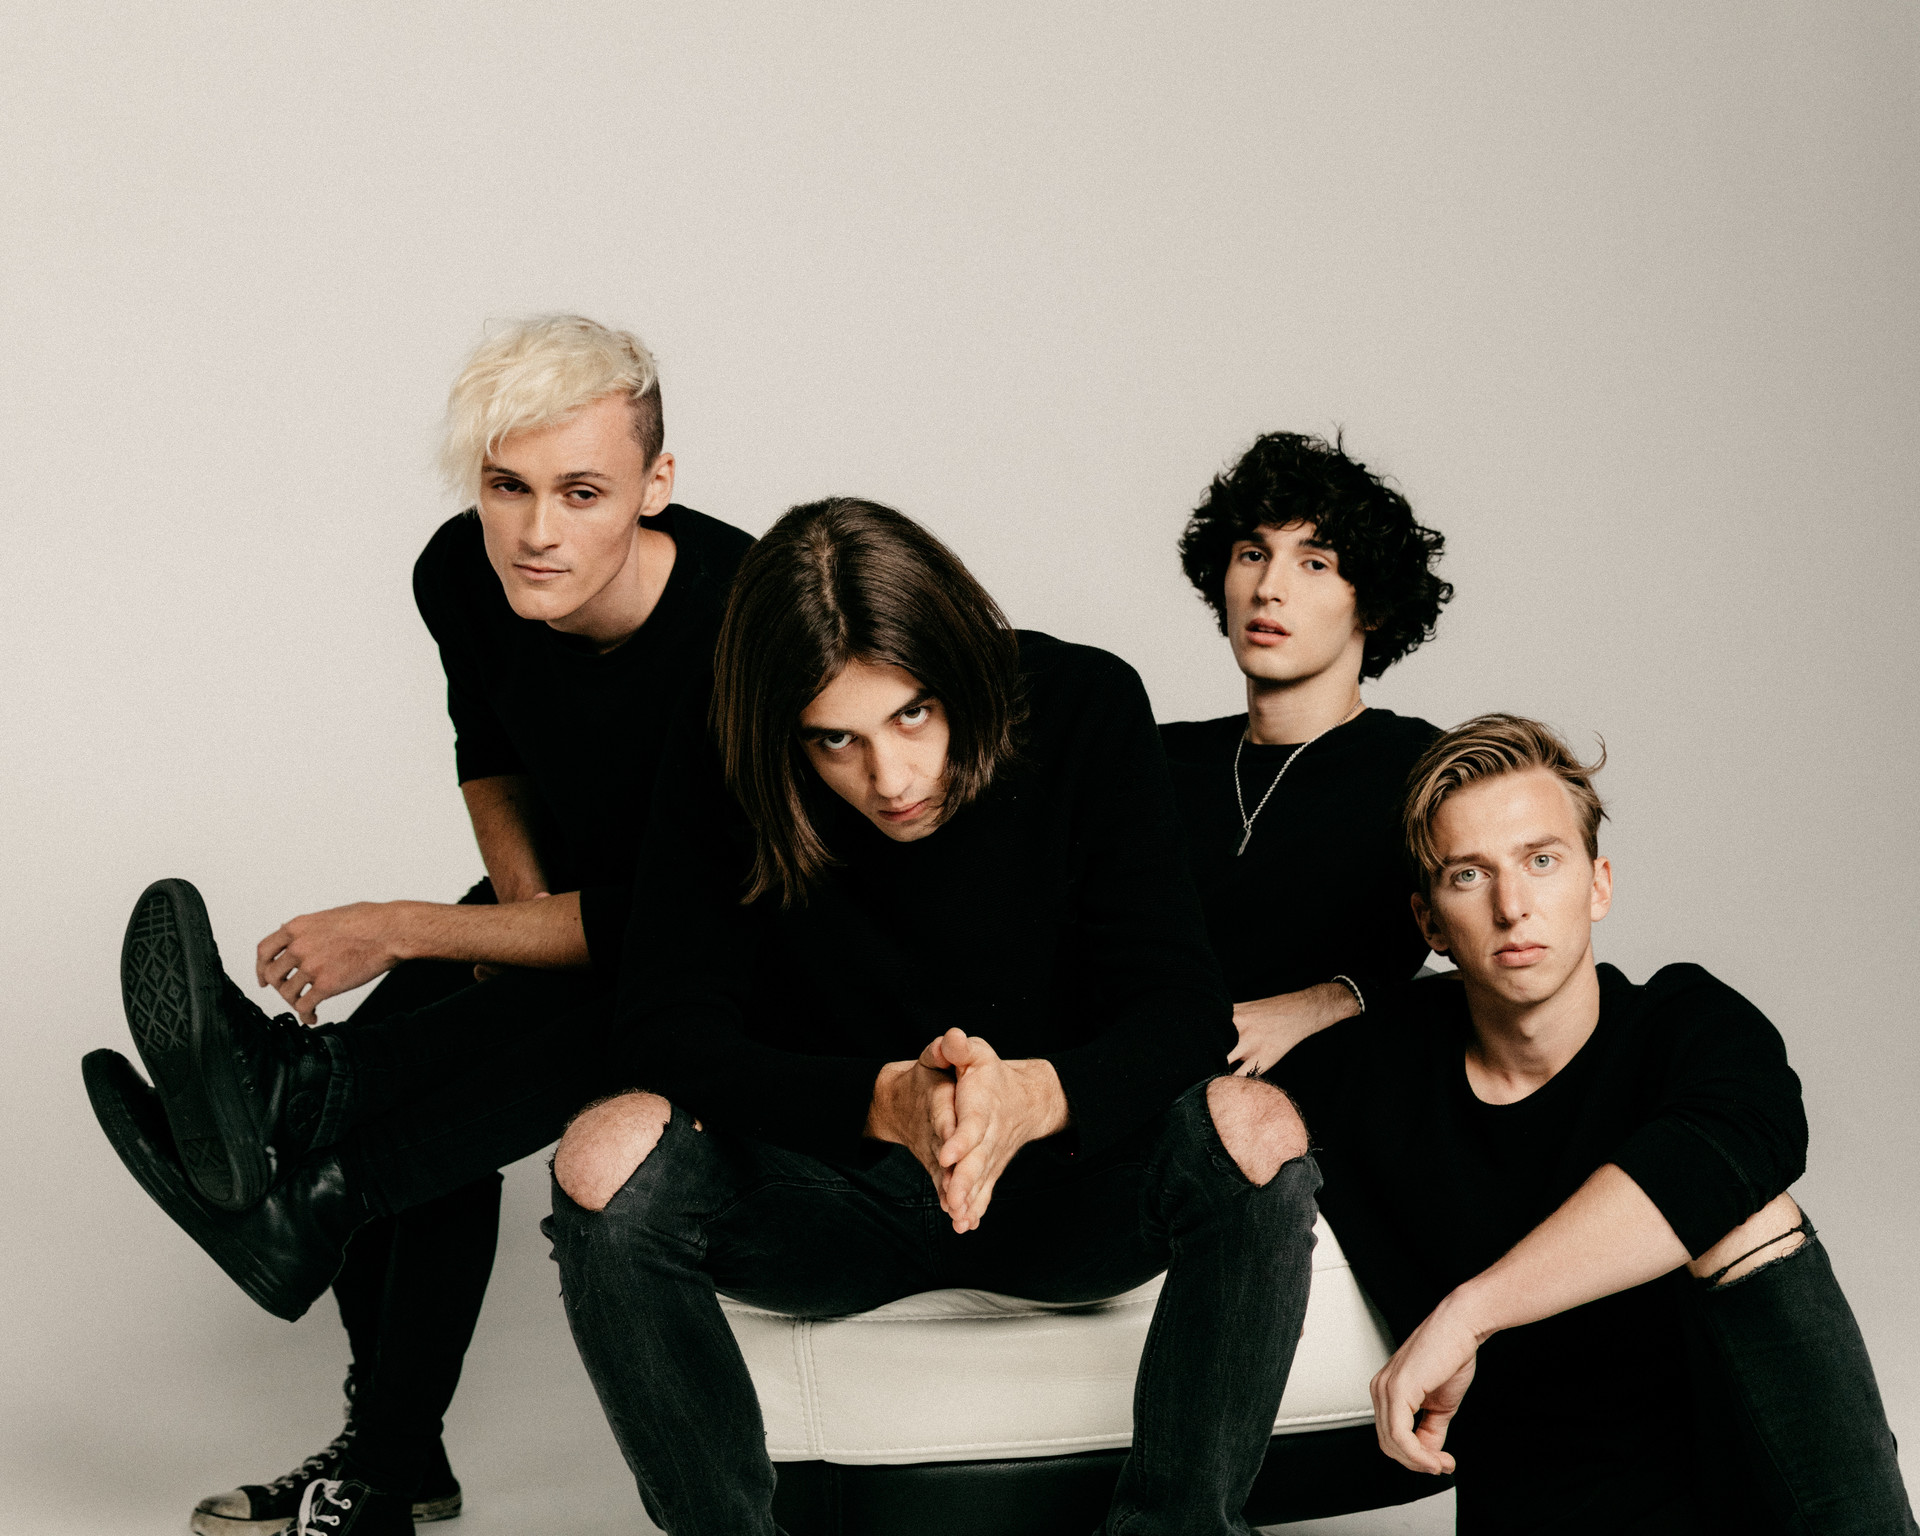 Check Out This New Single From The Faim, Co-Written By 5SOS' Ashton